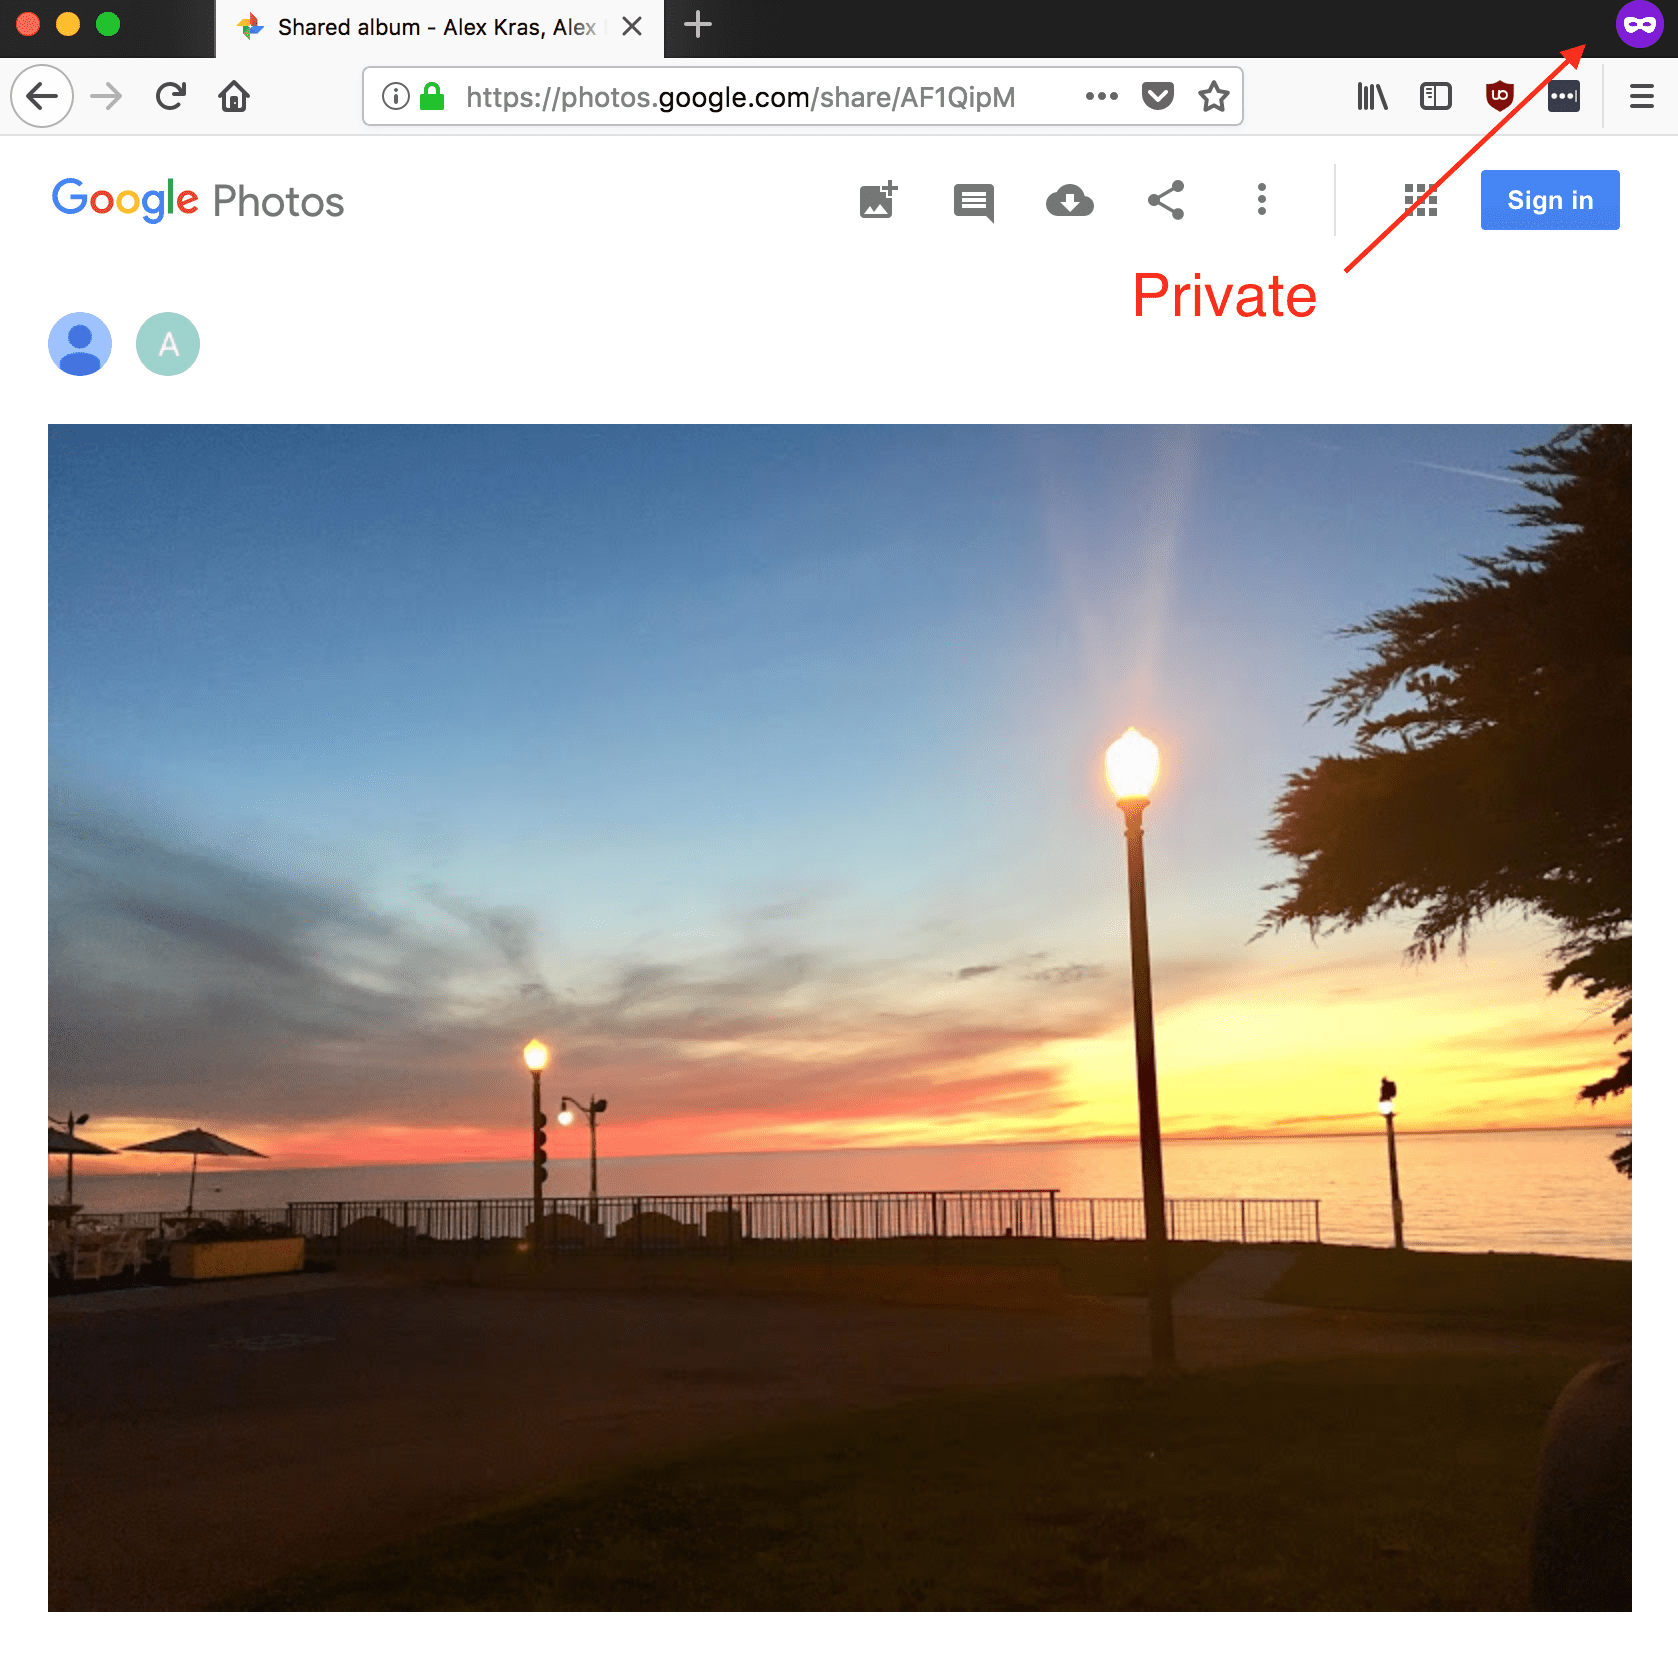 How do i access my iphone pictures on my mac